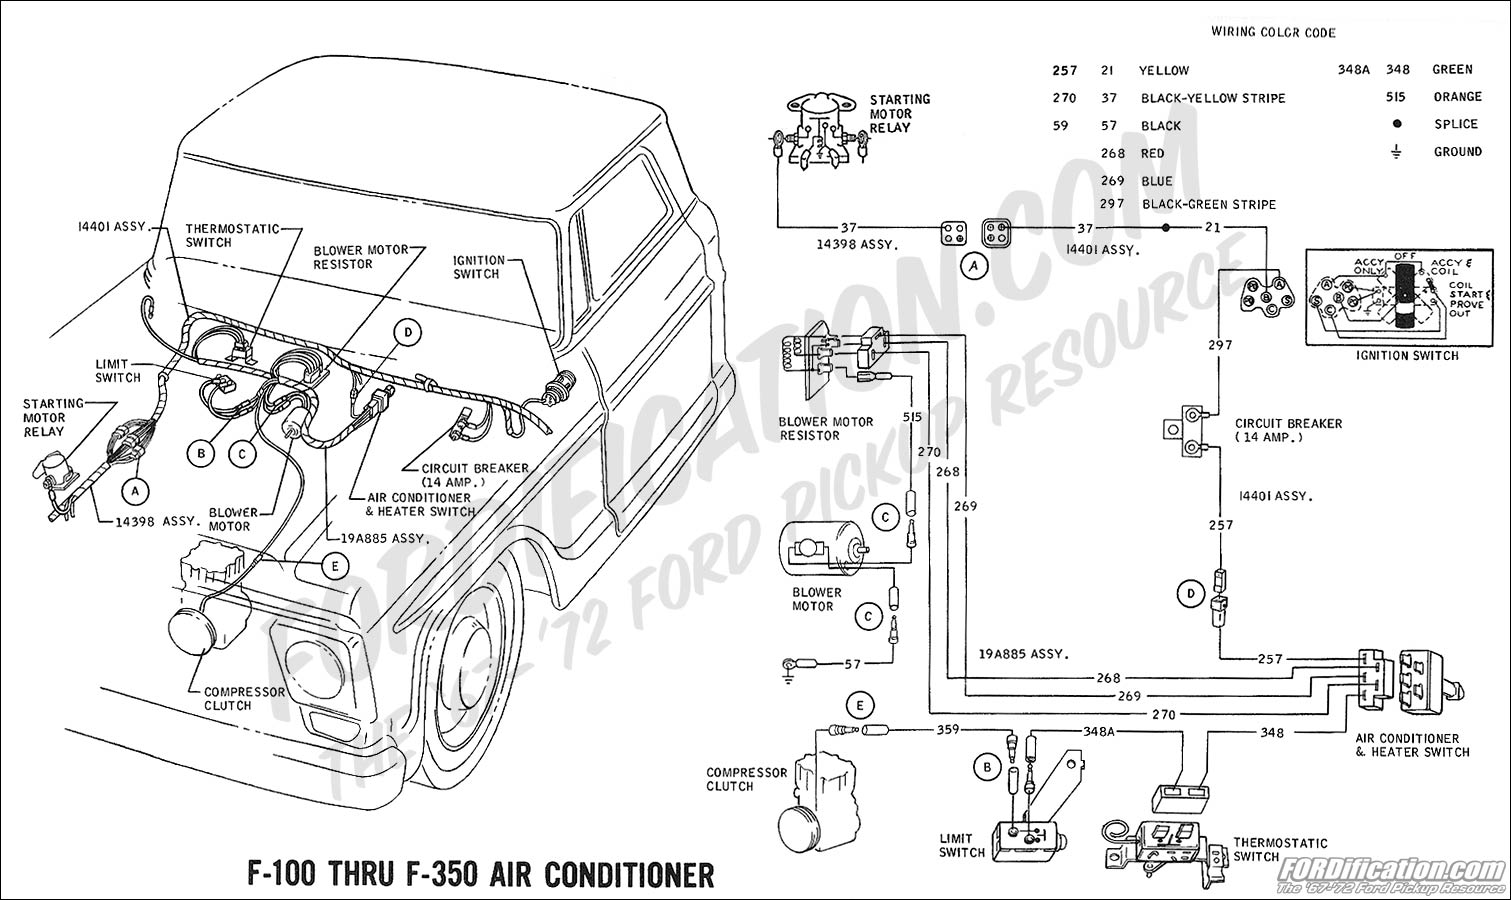 1991 ford explorer 4x4 wiring